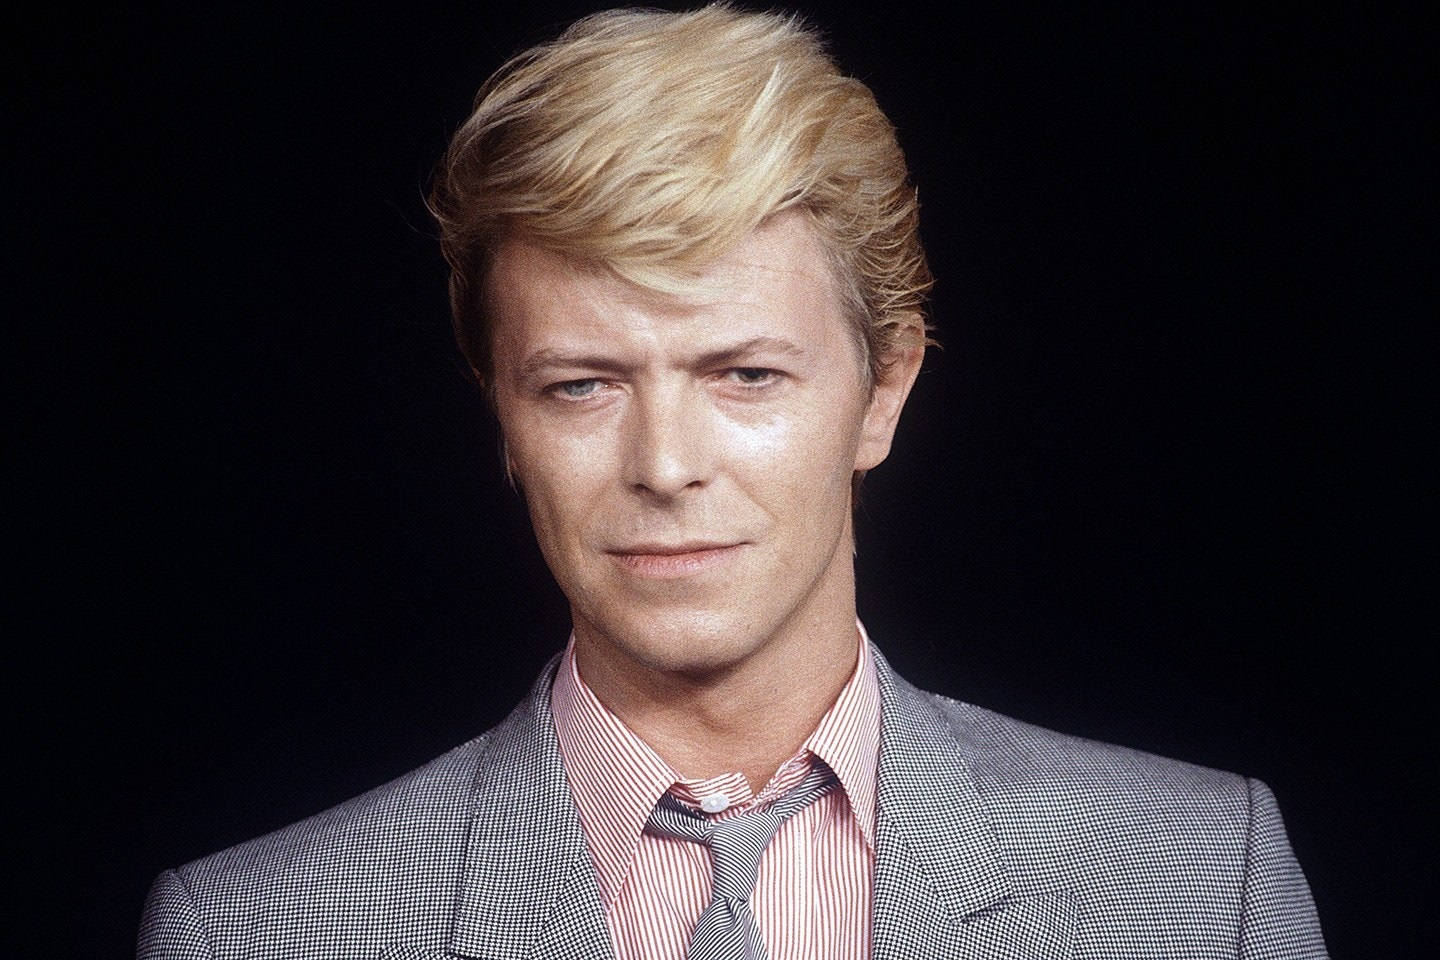 David Bowie, who died in 2016, was one of the biggest influences in rock history.